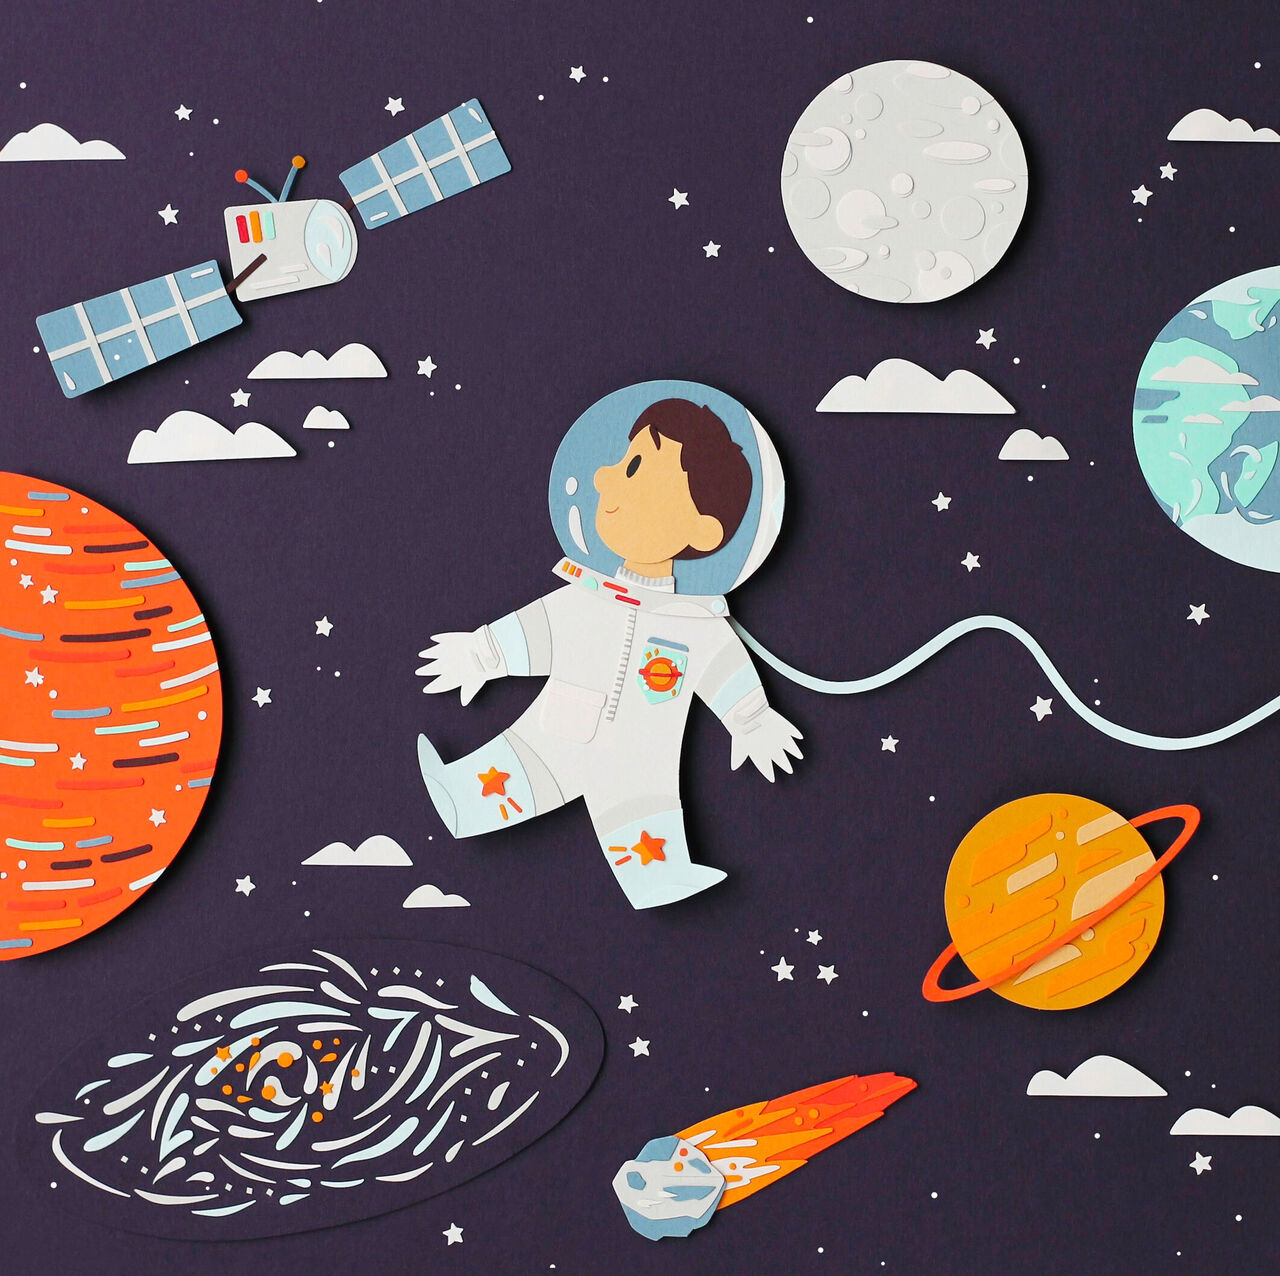 A beautifully illustrated scene of a lad floating in space in a spacesuit with planets and start around him. Entirely made out of paper cuttings!